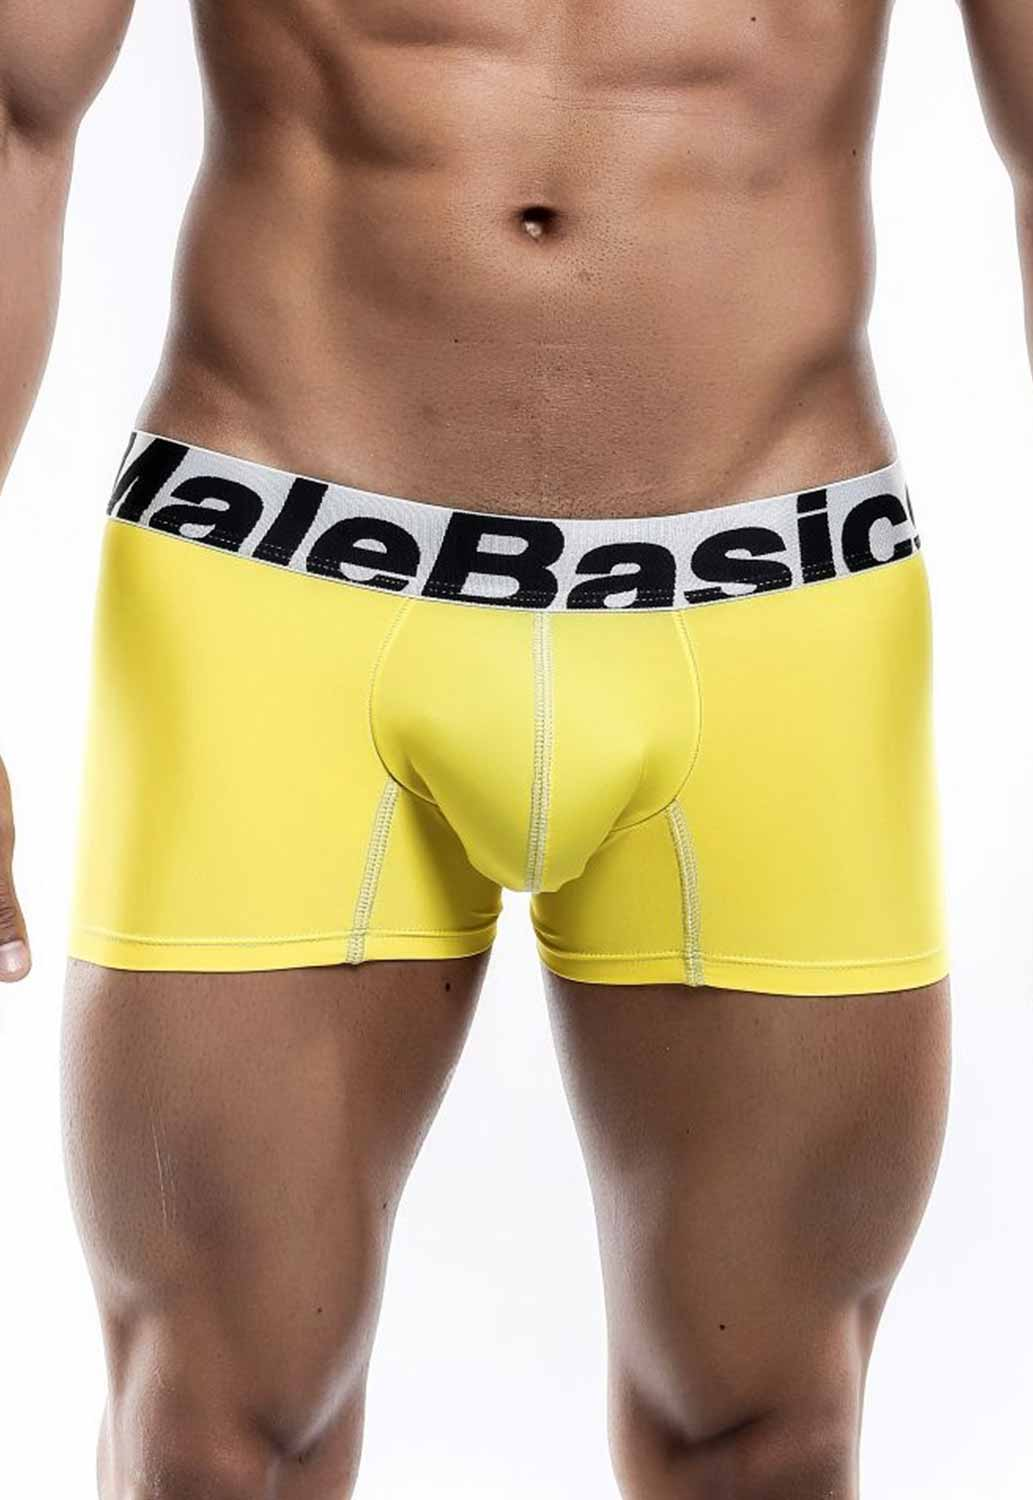 thumbnail 8 - Malebasics Men's Microfiber Short Boxer MBM01Y Men's Trunks